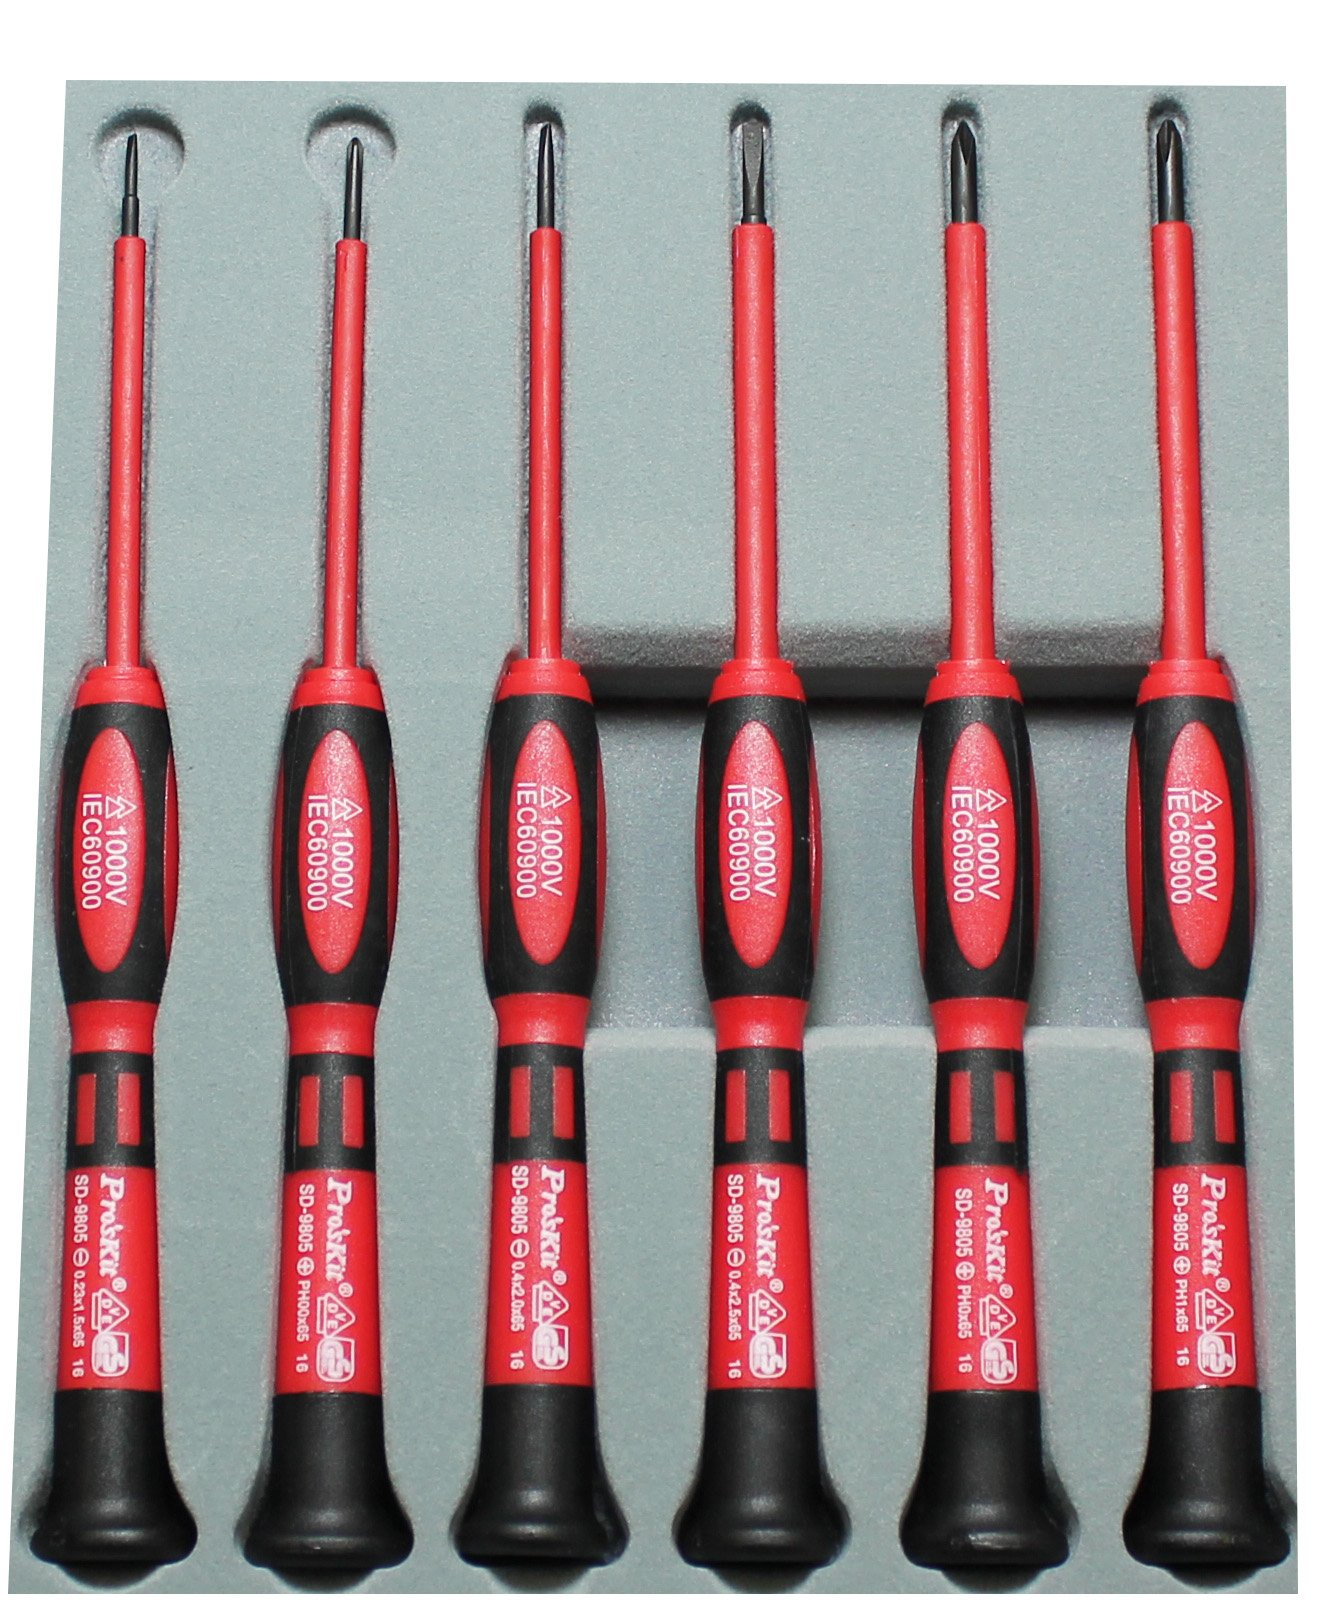 Pro'sKit 902-099 Insulated Precision Screwdriver Set, 3 Phillips and 3 Flat